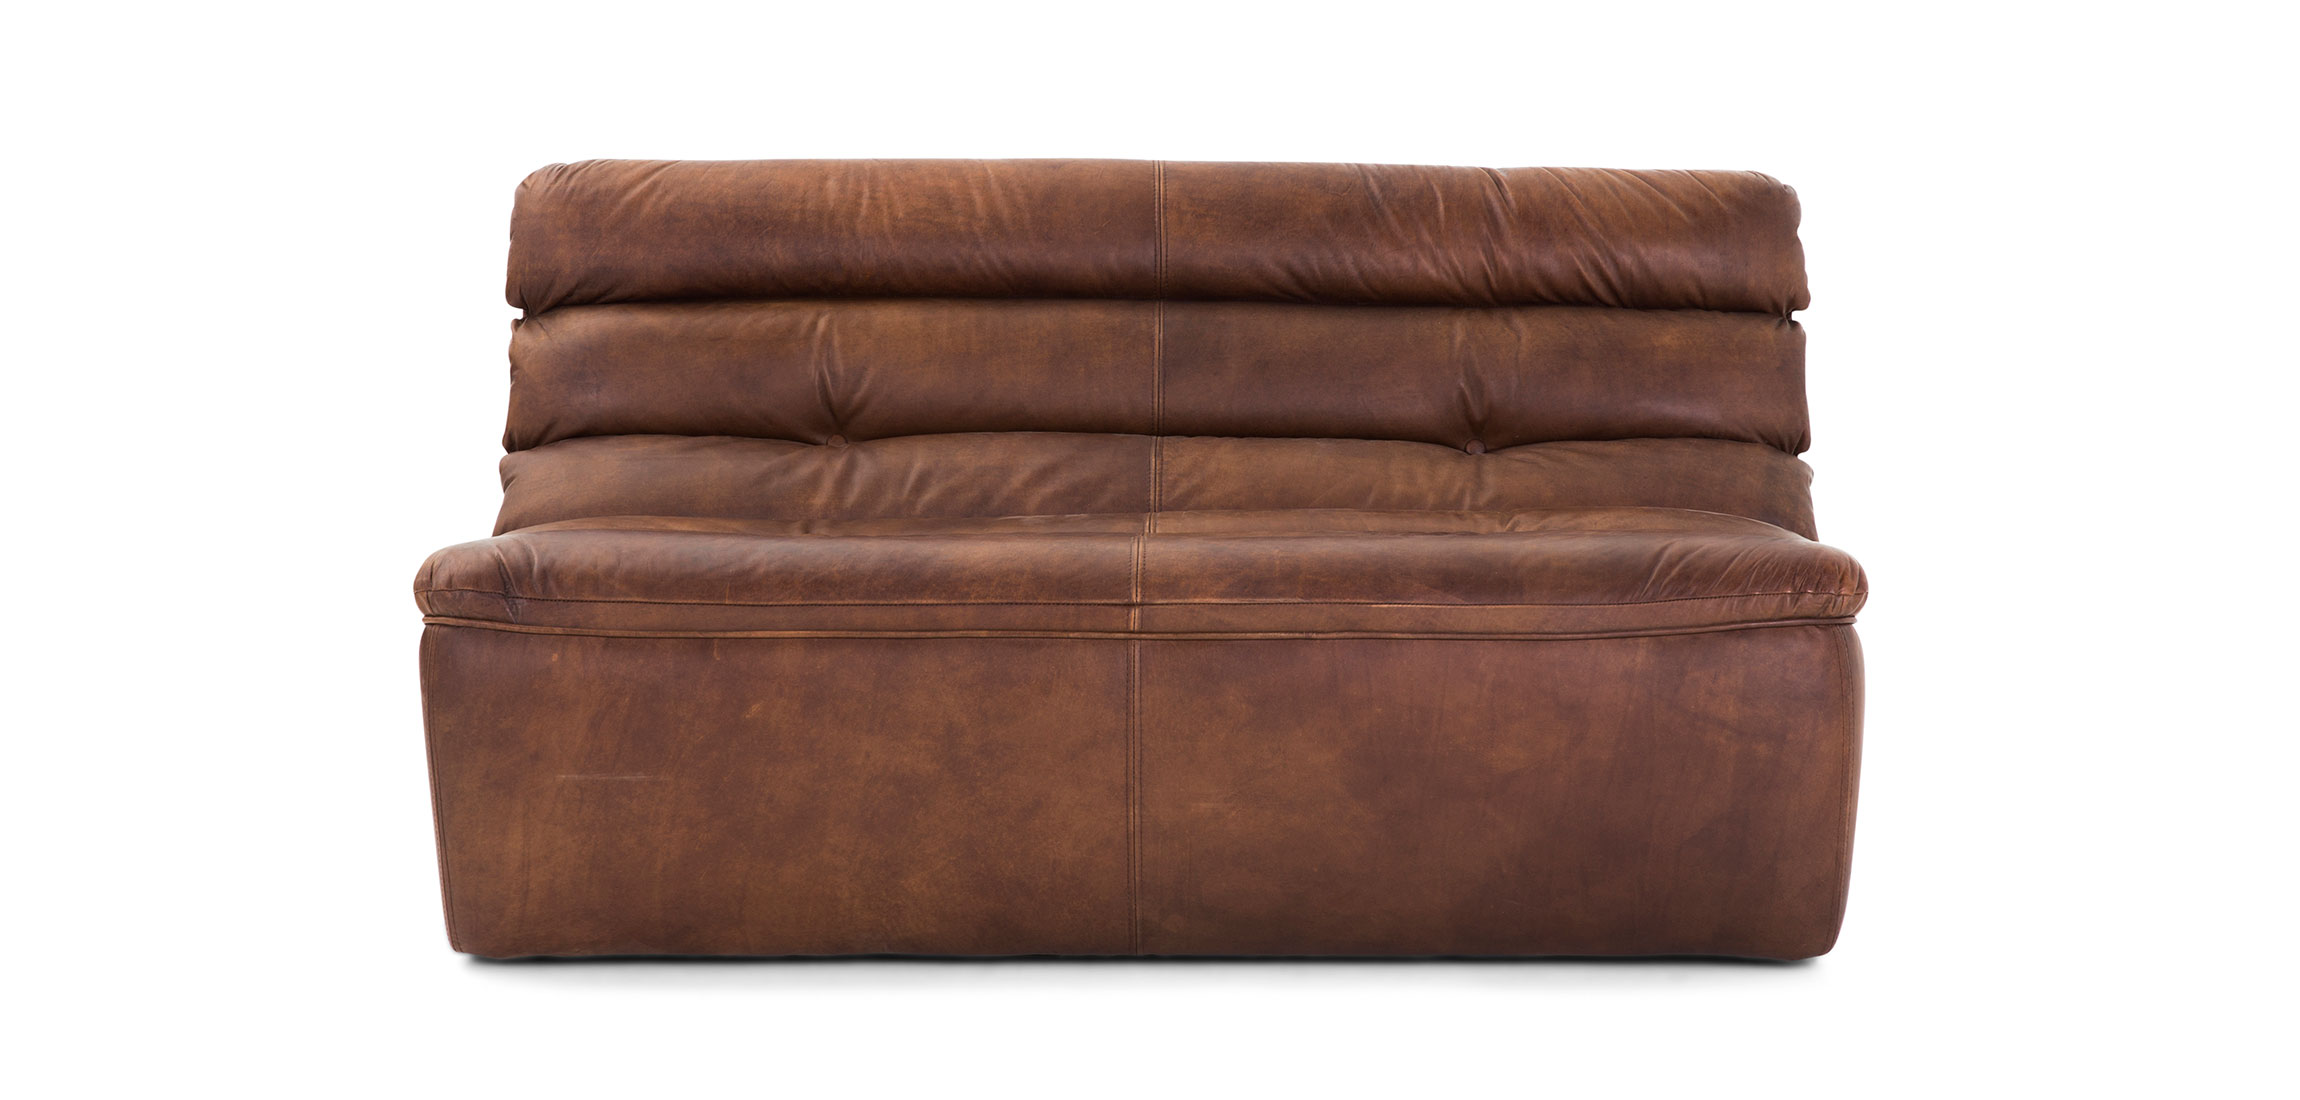 Dark Brown Leather Sofa Stunning Dark Brown Leather Sofa With Rochester Thesofa